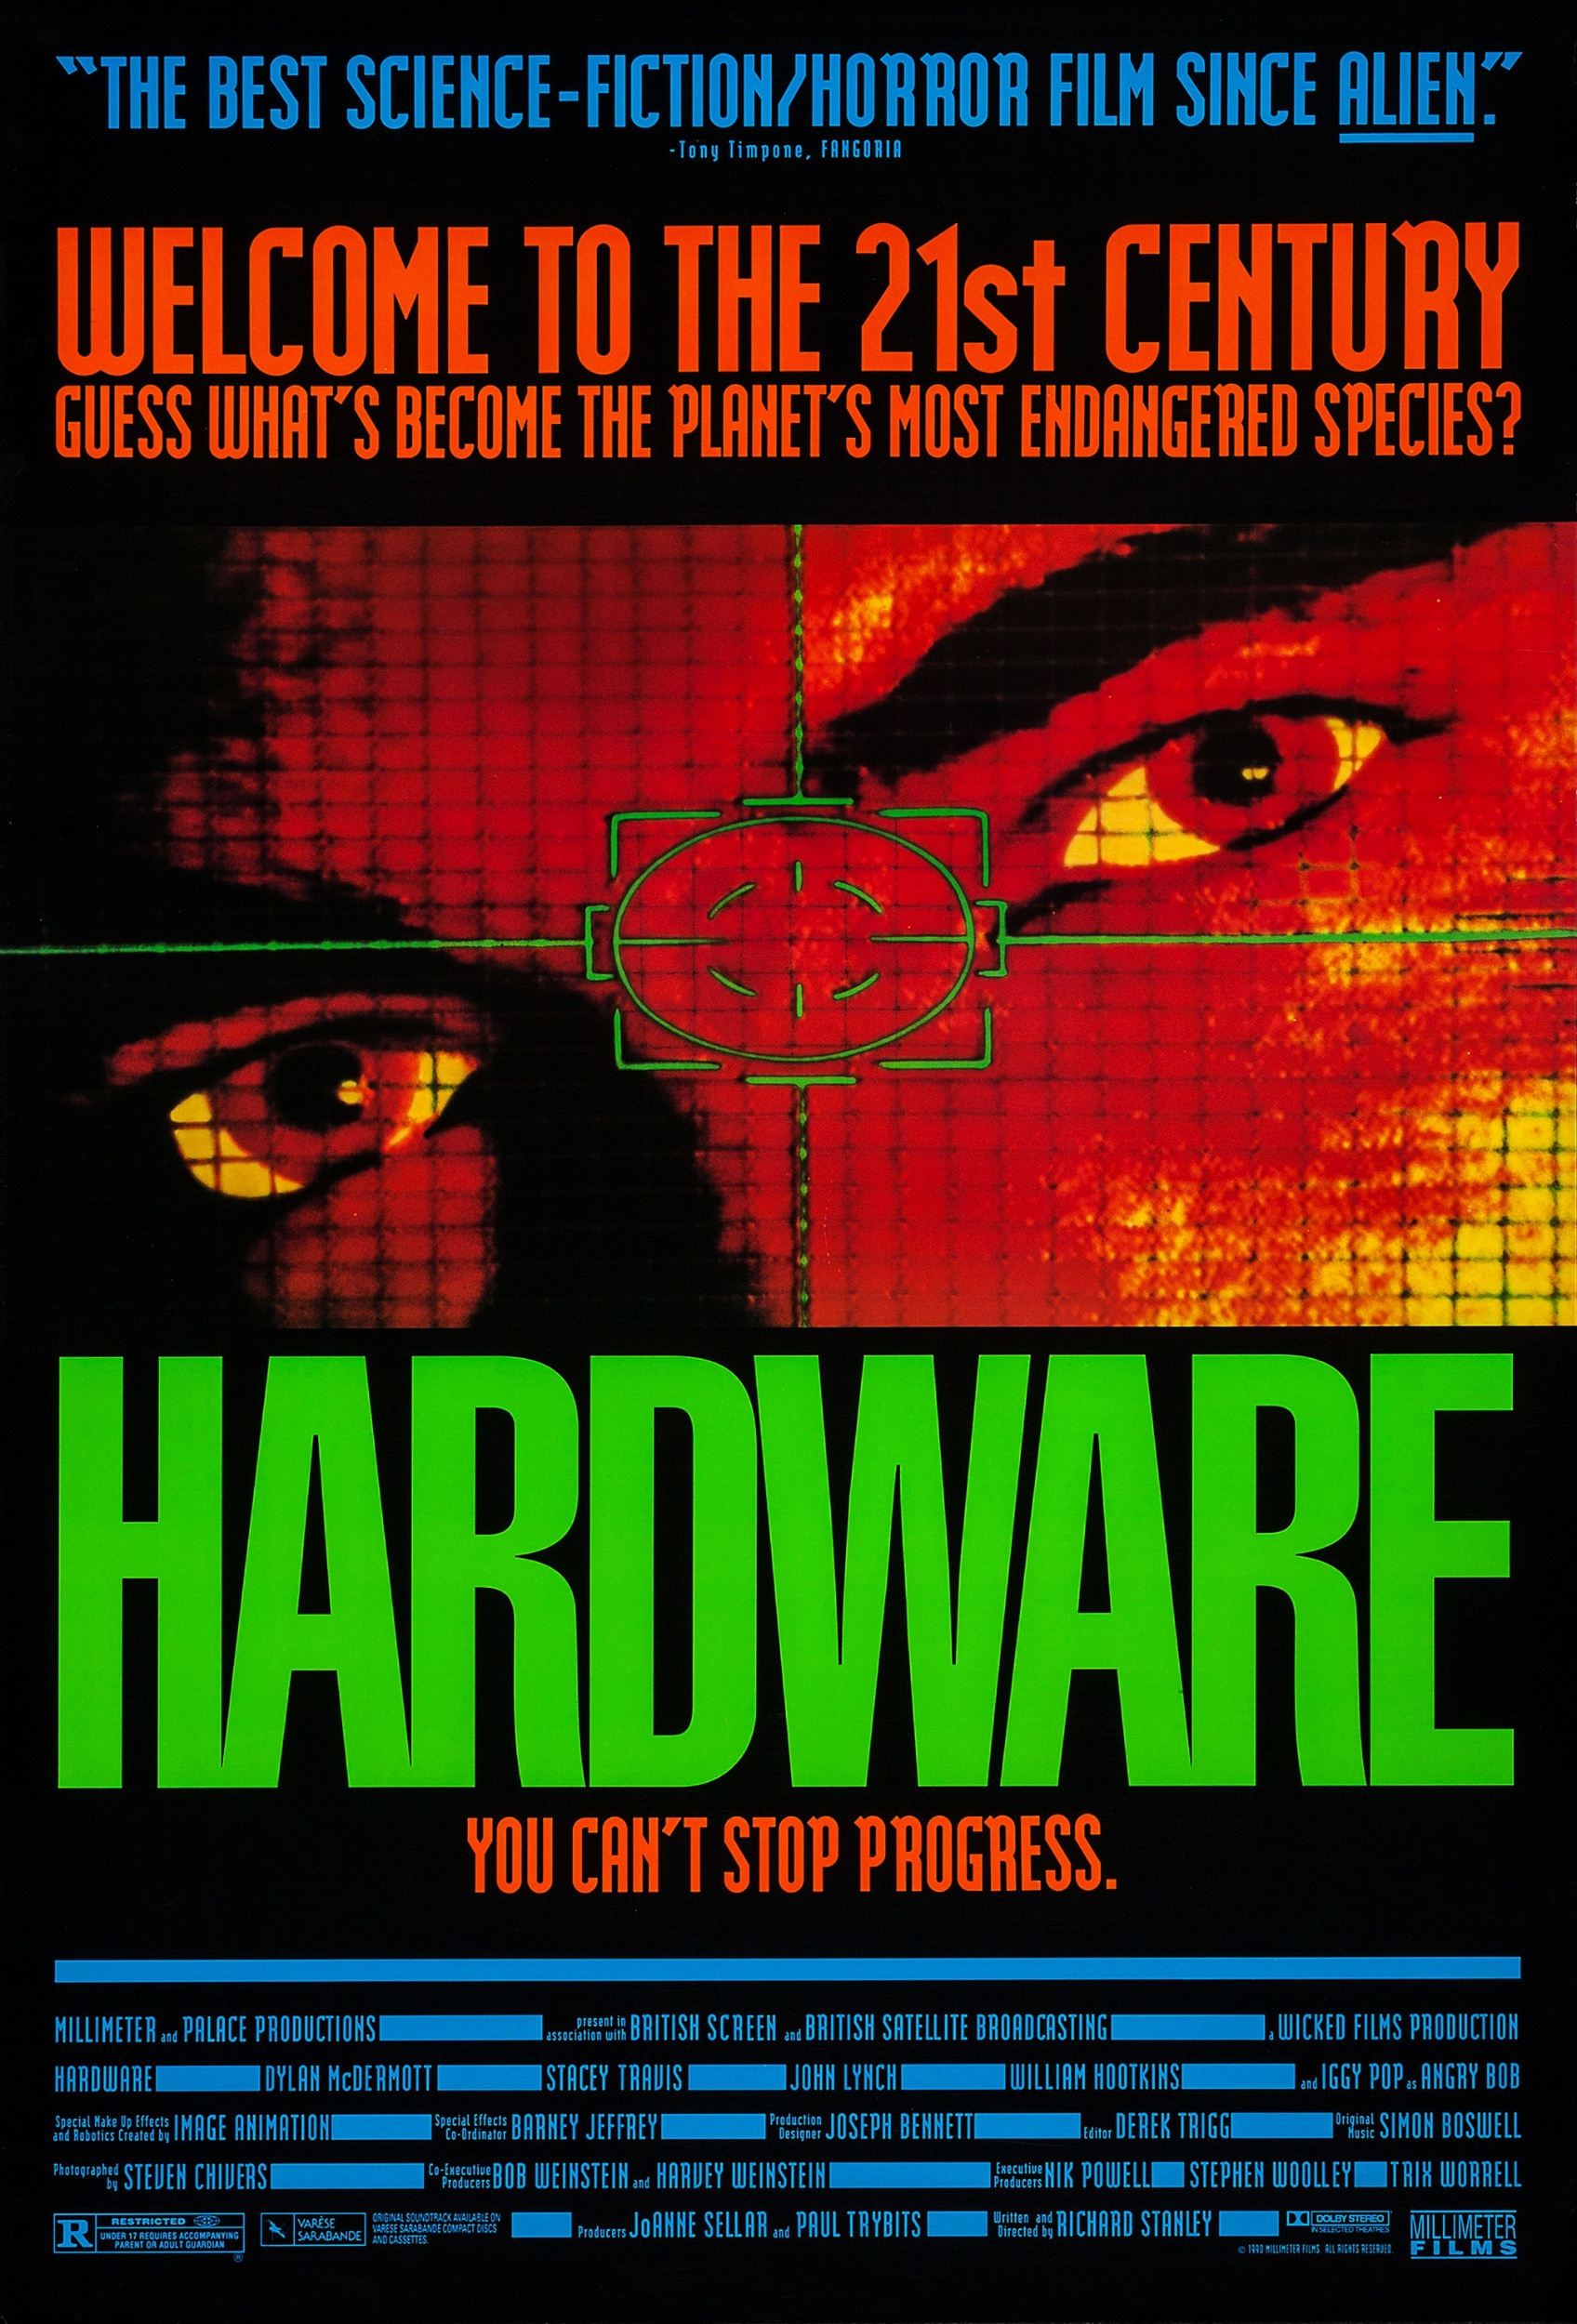 In an America ravaged by atomic warfare, nomads spend their days scavenging for scrap in a blasted landscape. That's how ex-soldier Moses Baxter (Dylan McDermott) comes into possession of some spare android parts. He buys them as a present for his artist girlfriend, Jill (Stacey Travis), who plans to put them in a sculpture. What they don't know is that the pieces come from a new kind of android that is capable of reassembling itself -- and is programmed to kill.